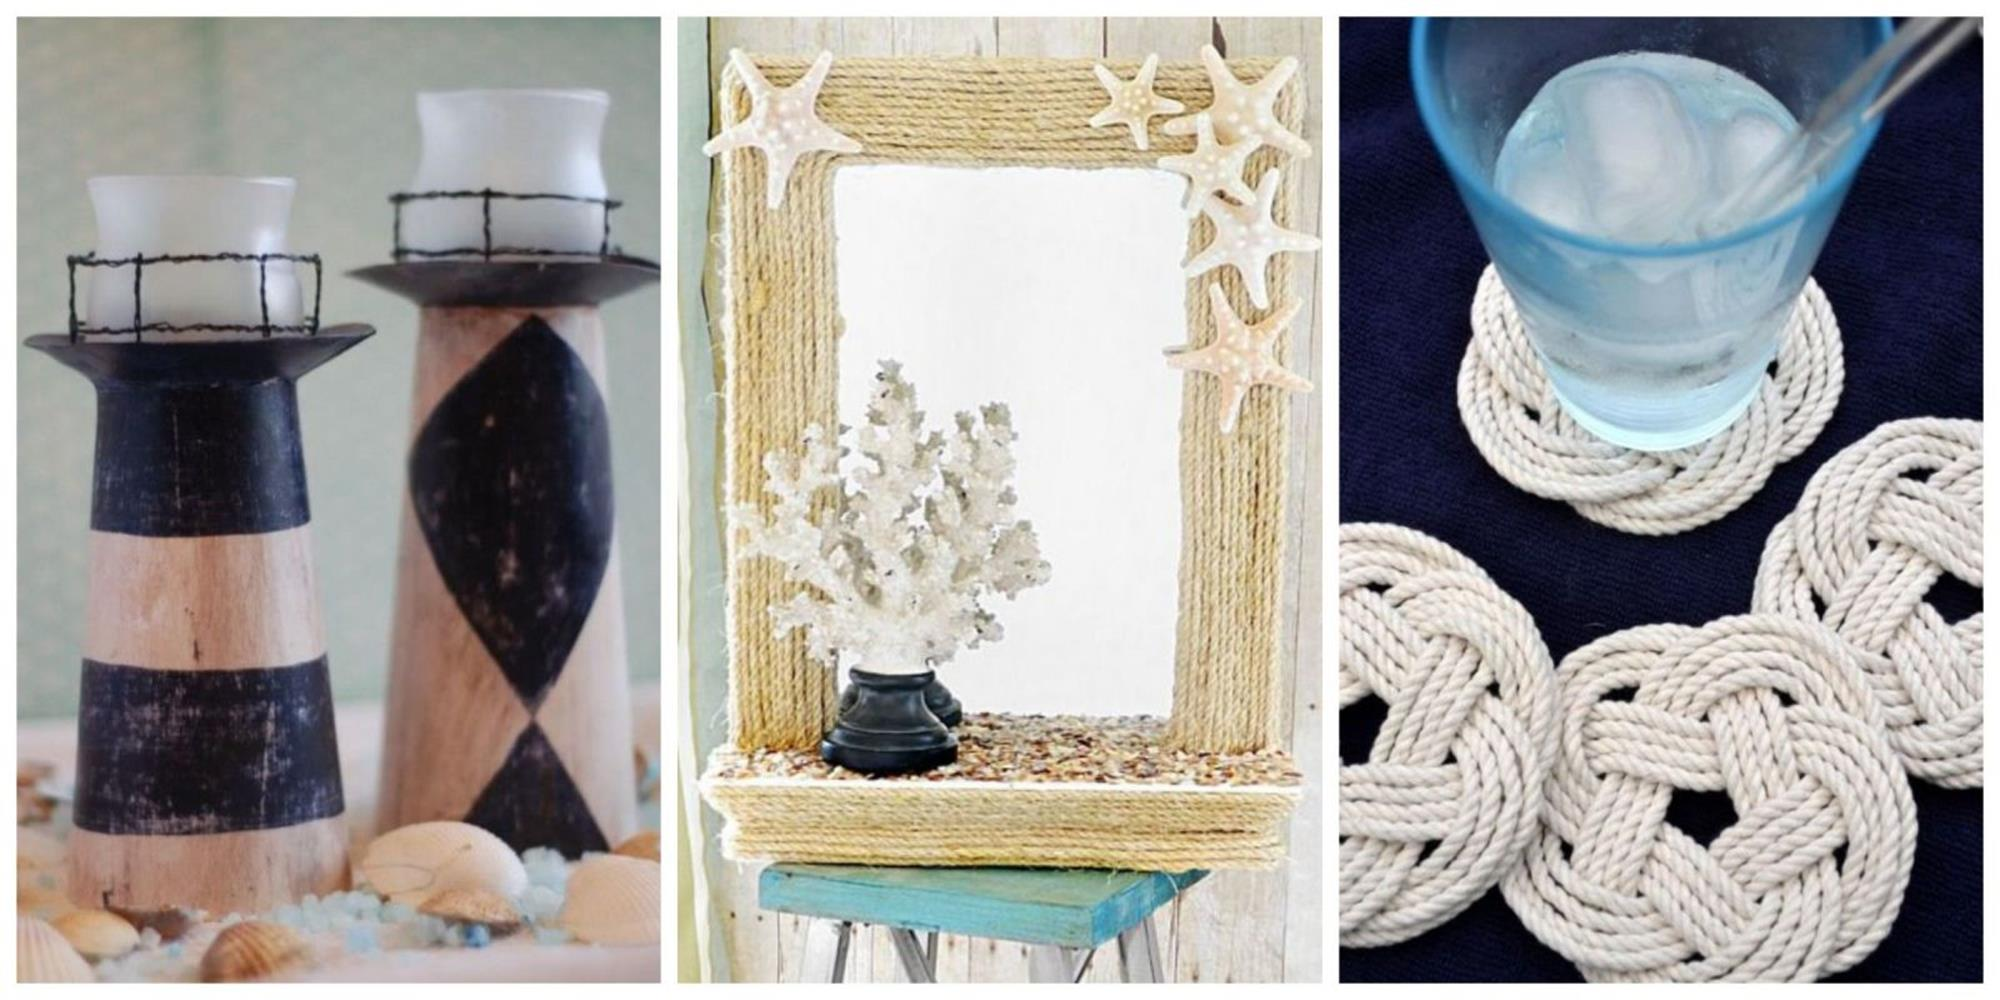 Creative Homemade Crafts for House Decorations Ideas 13